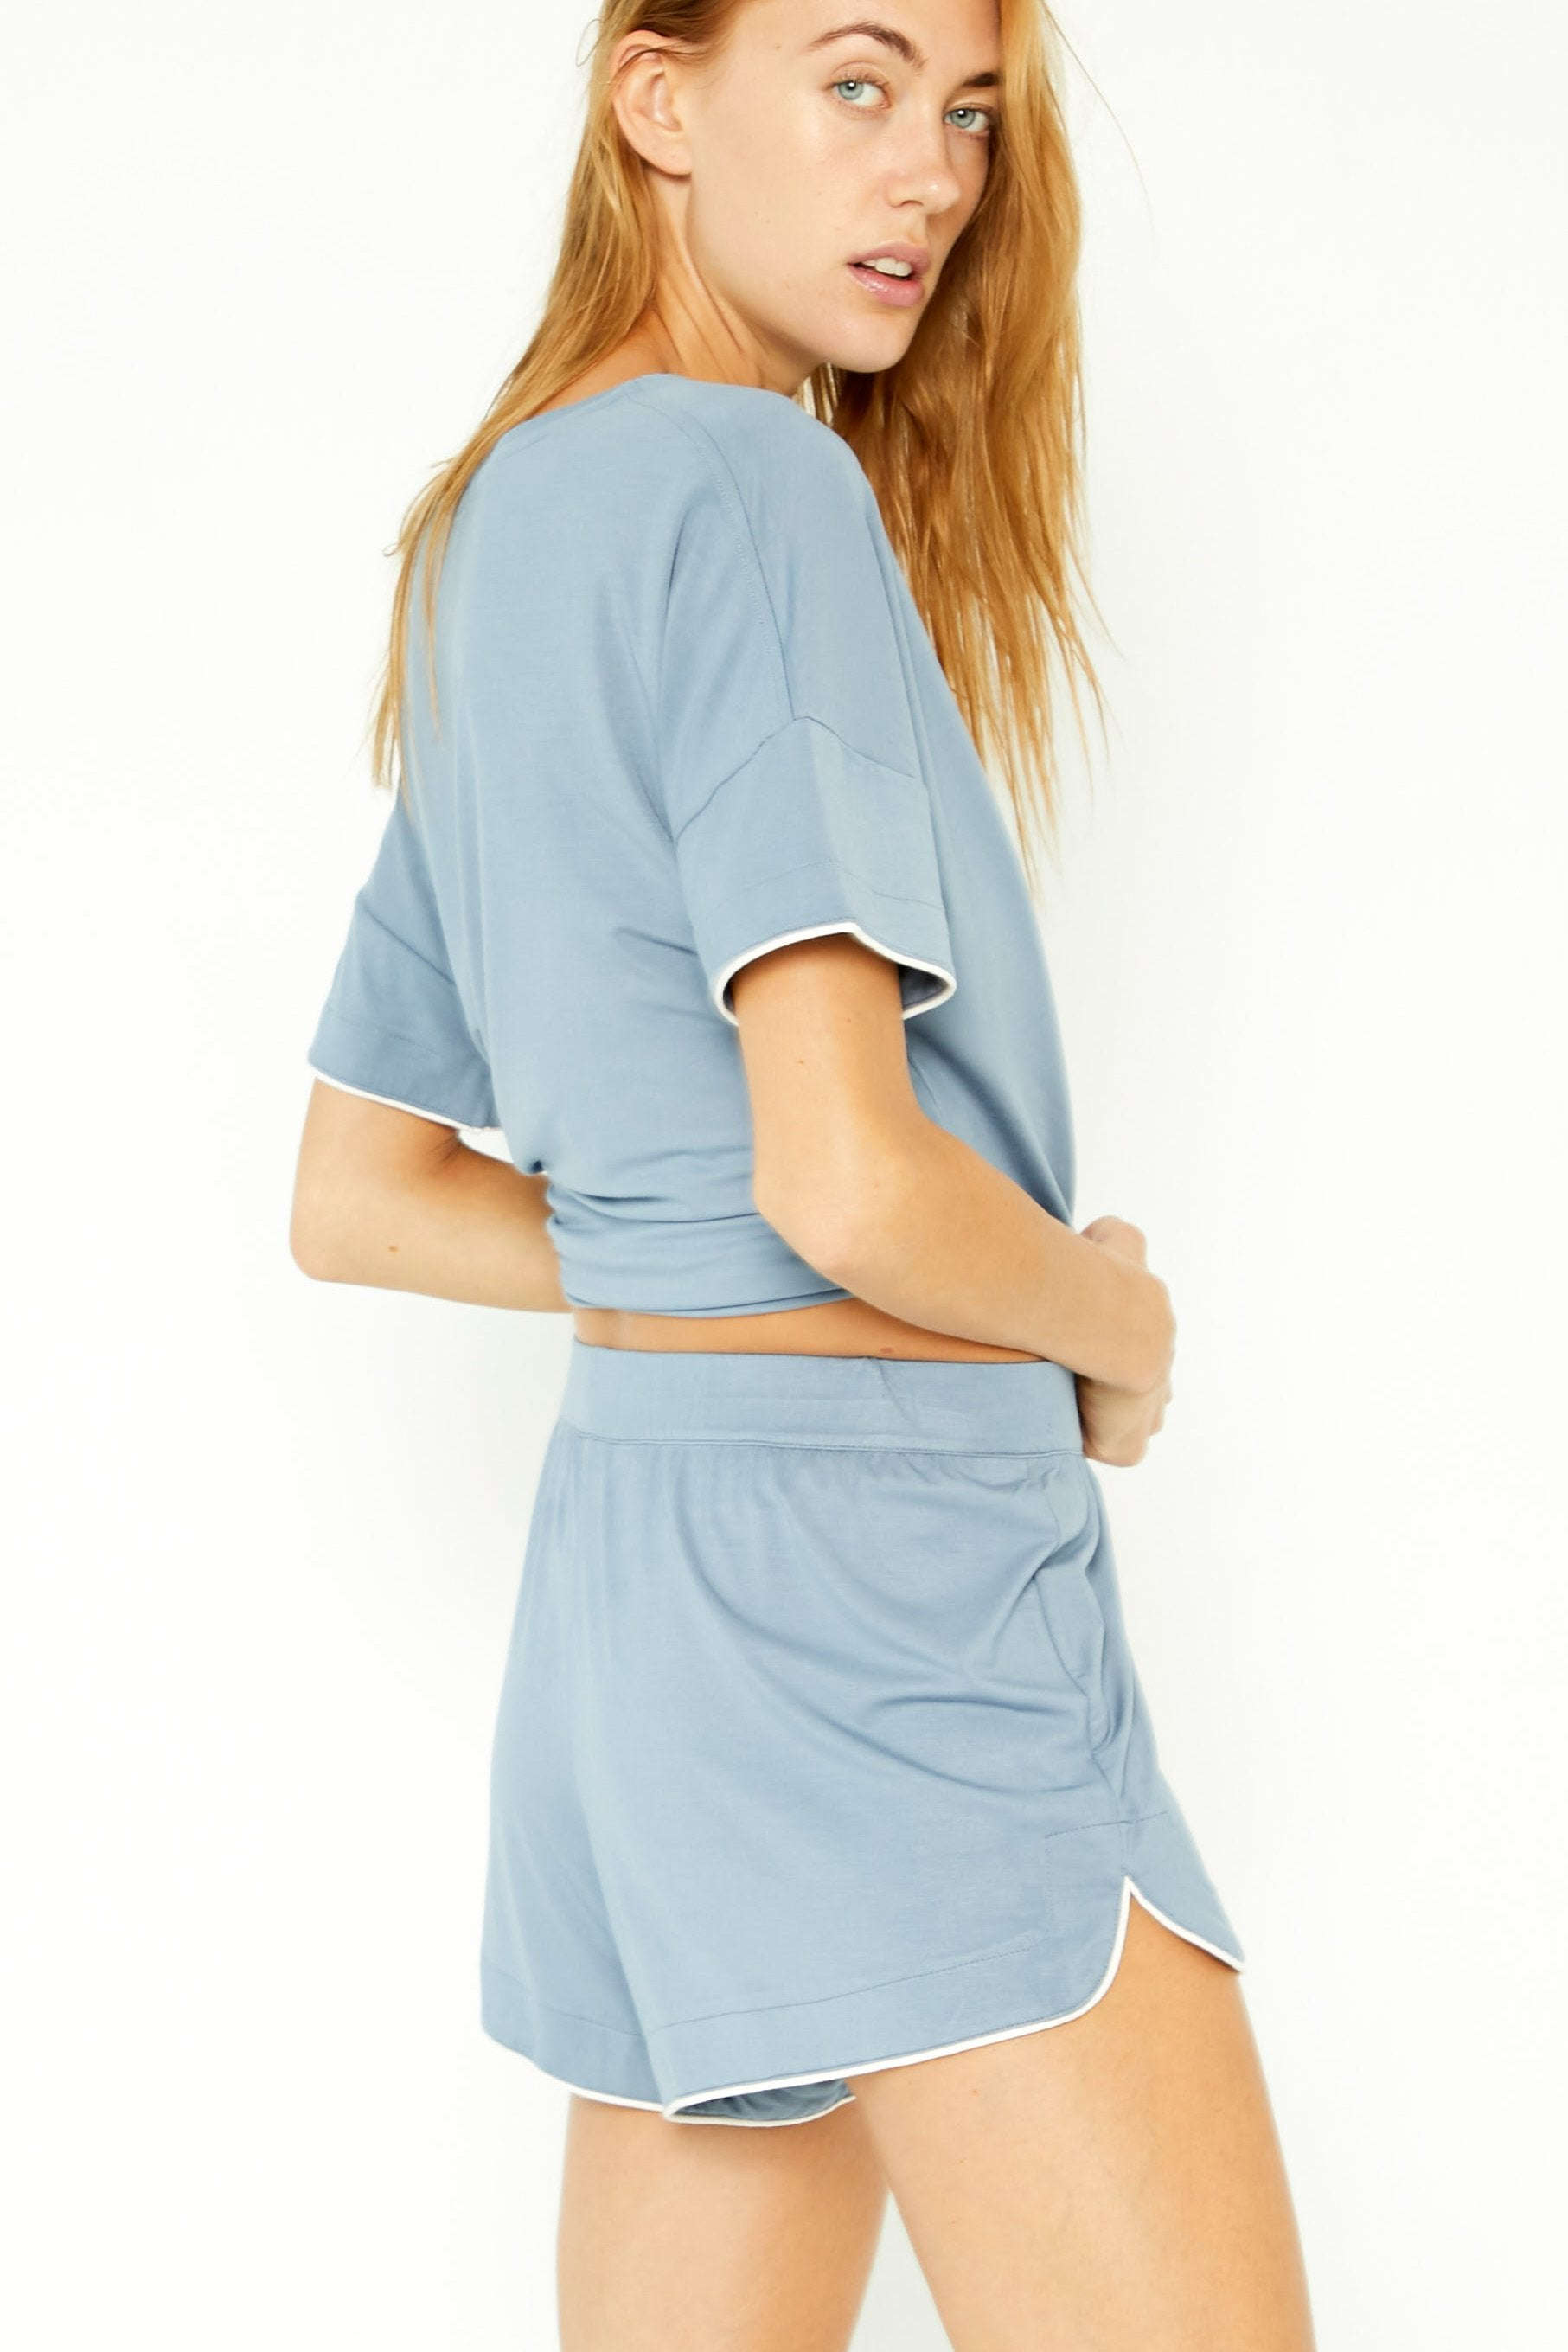 Super-stretch Sleep Short - Cool Blue with Creamer Piping